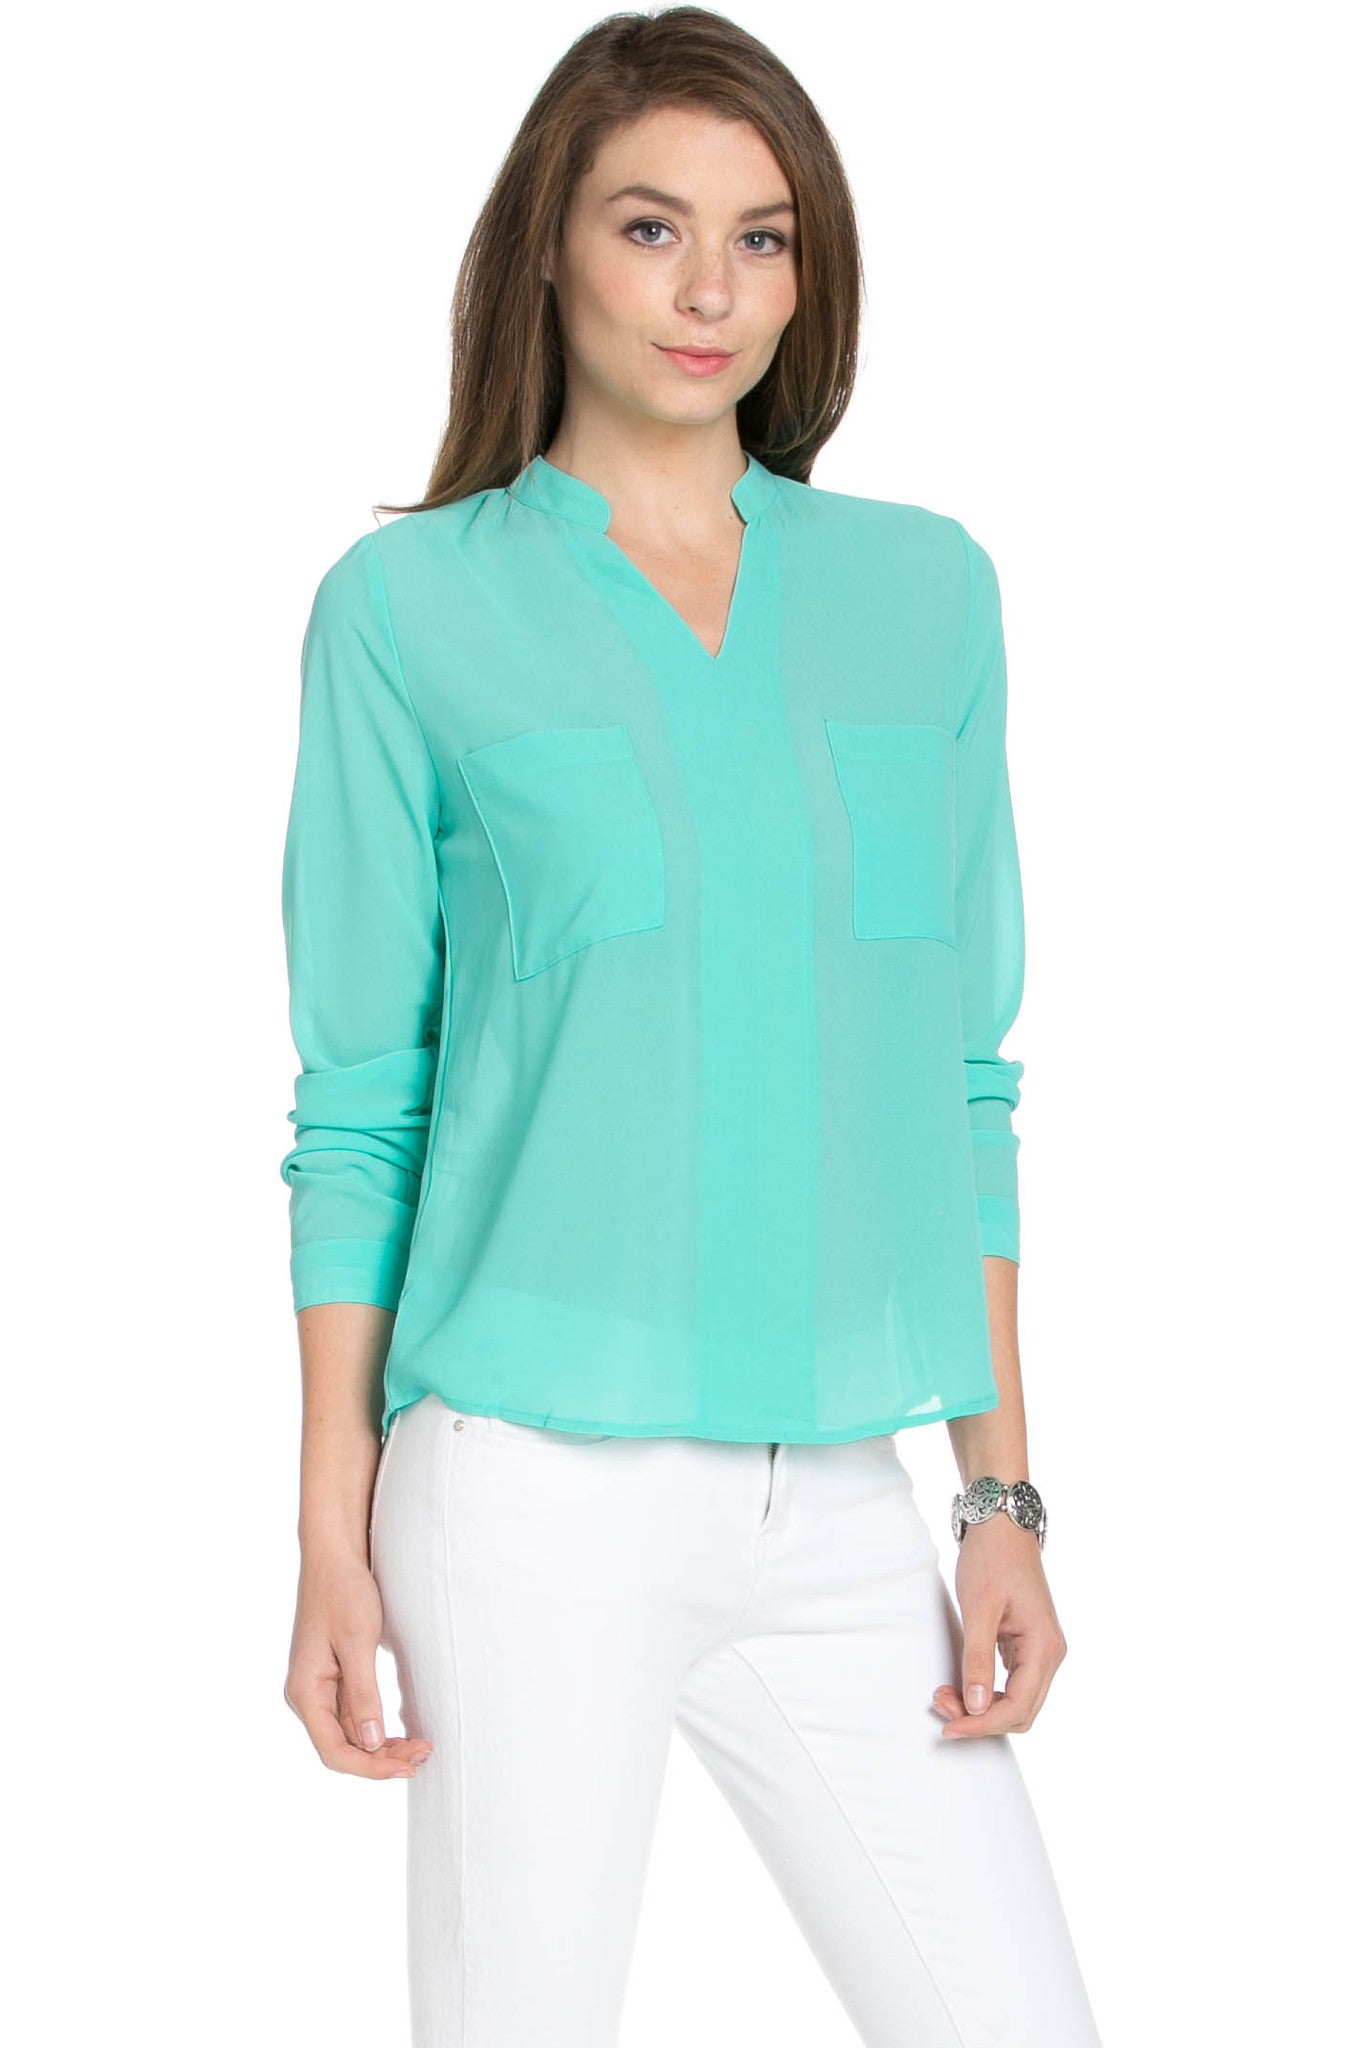 V-Neck Chiffon Blouse Mint - Tops - My Yuccie - 4